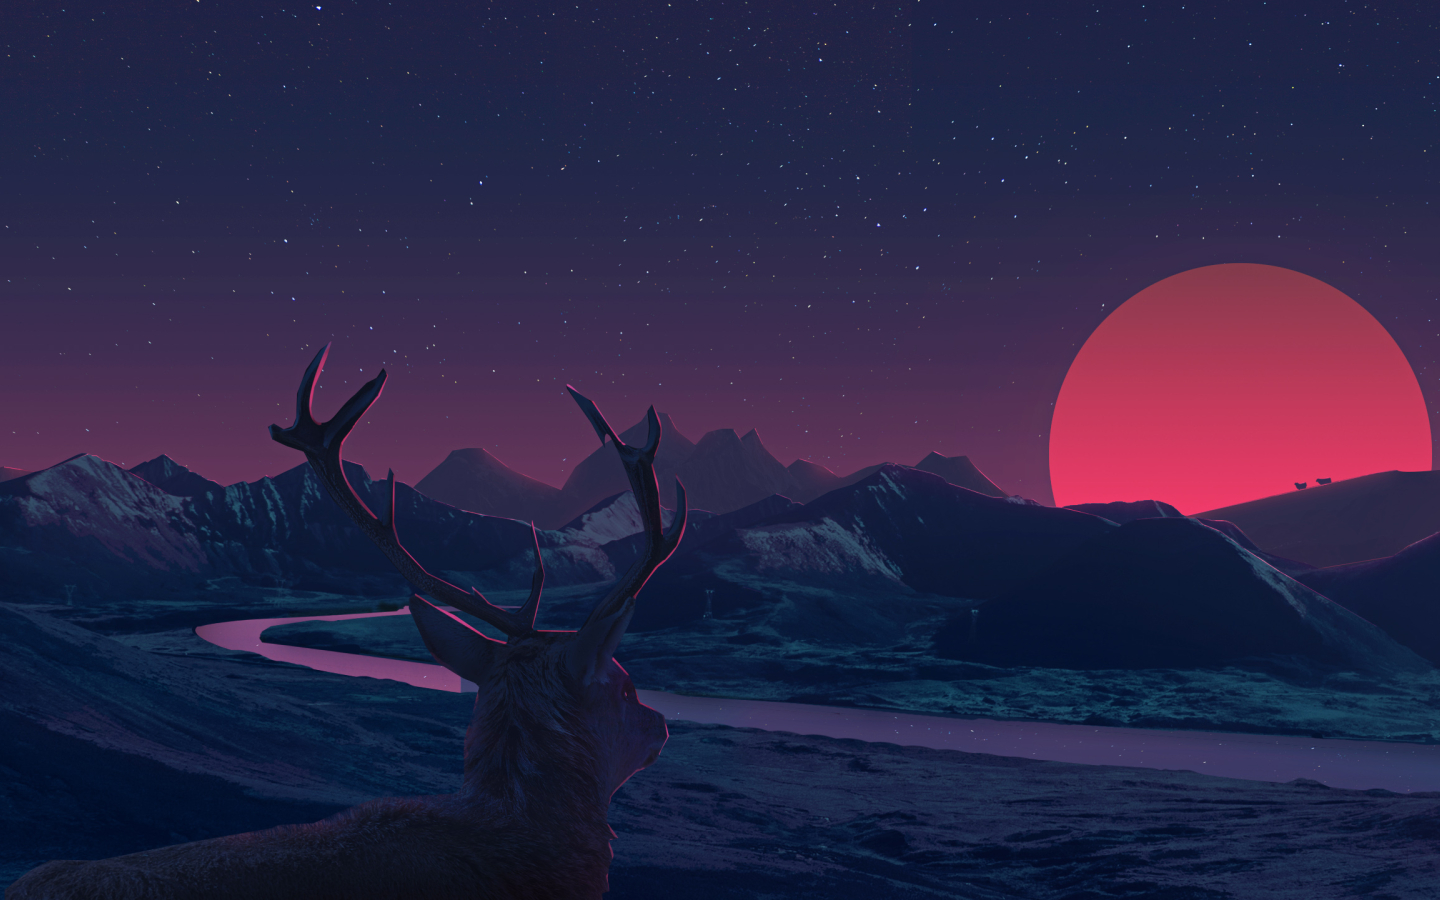 4k Girls Redmi Note 5 Mobile Wallpaper: Deer Staring At Sunset Anime, Full HD 2K Wallpaper